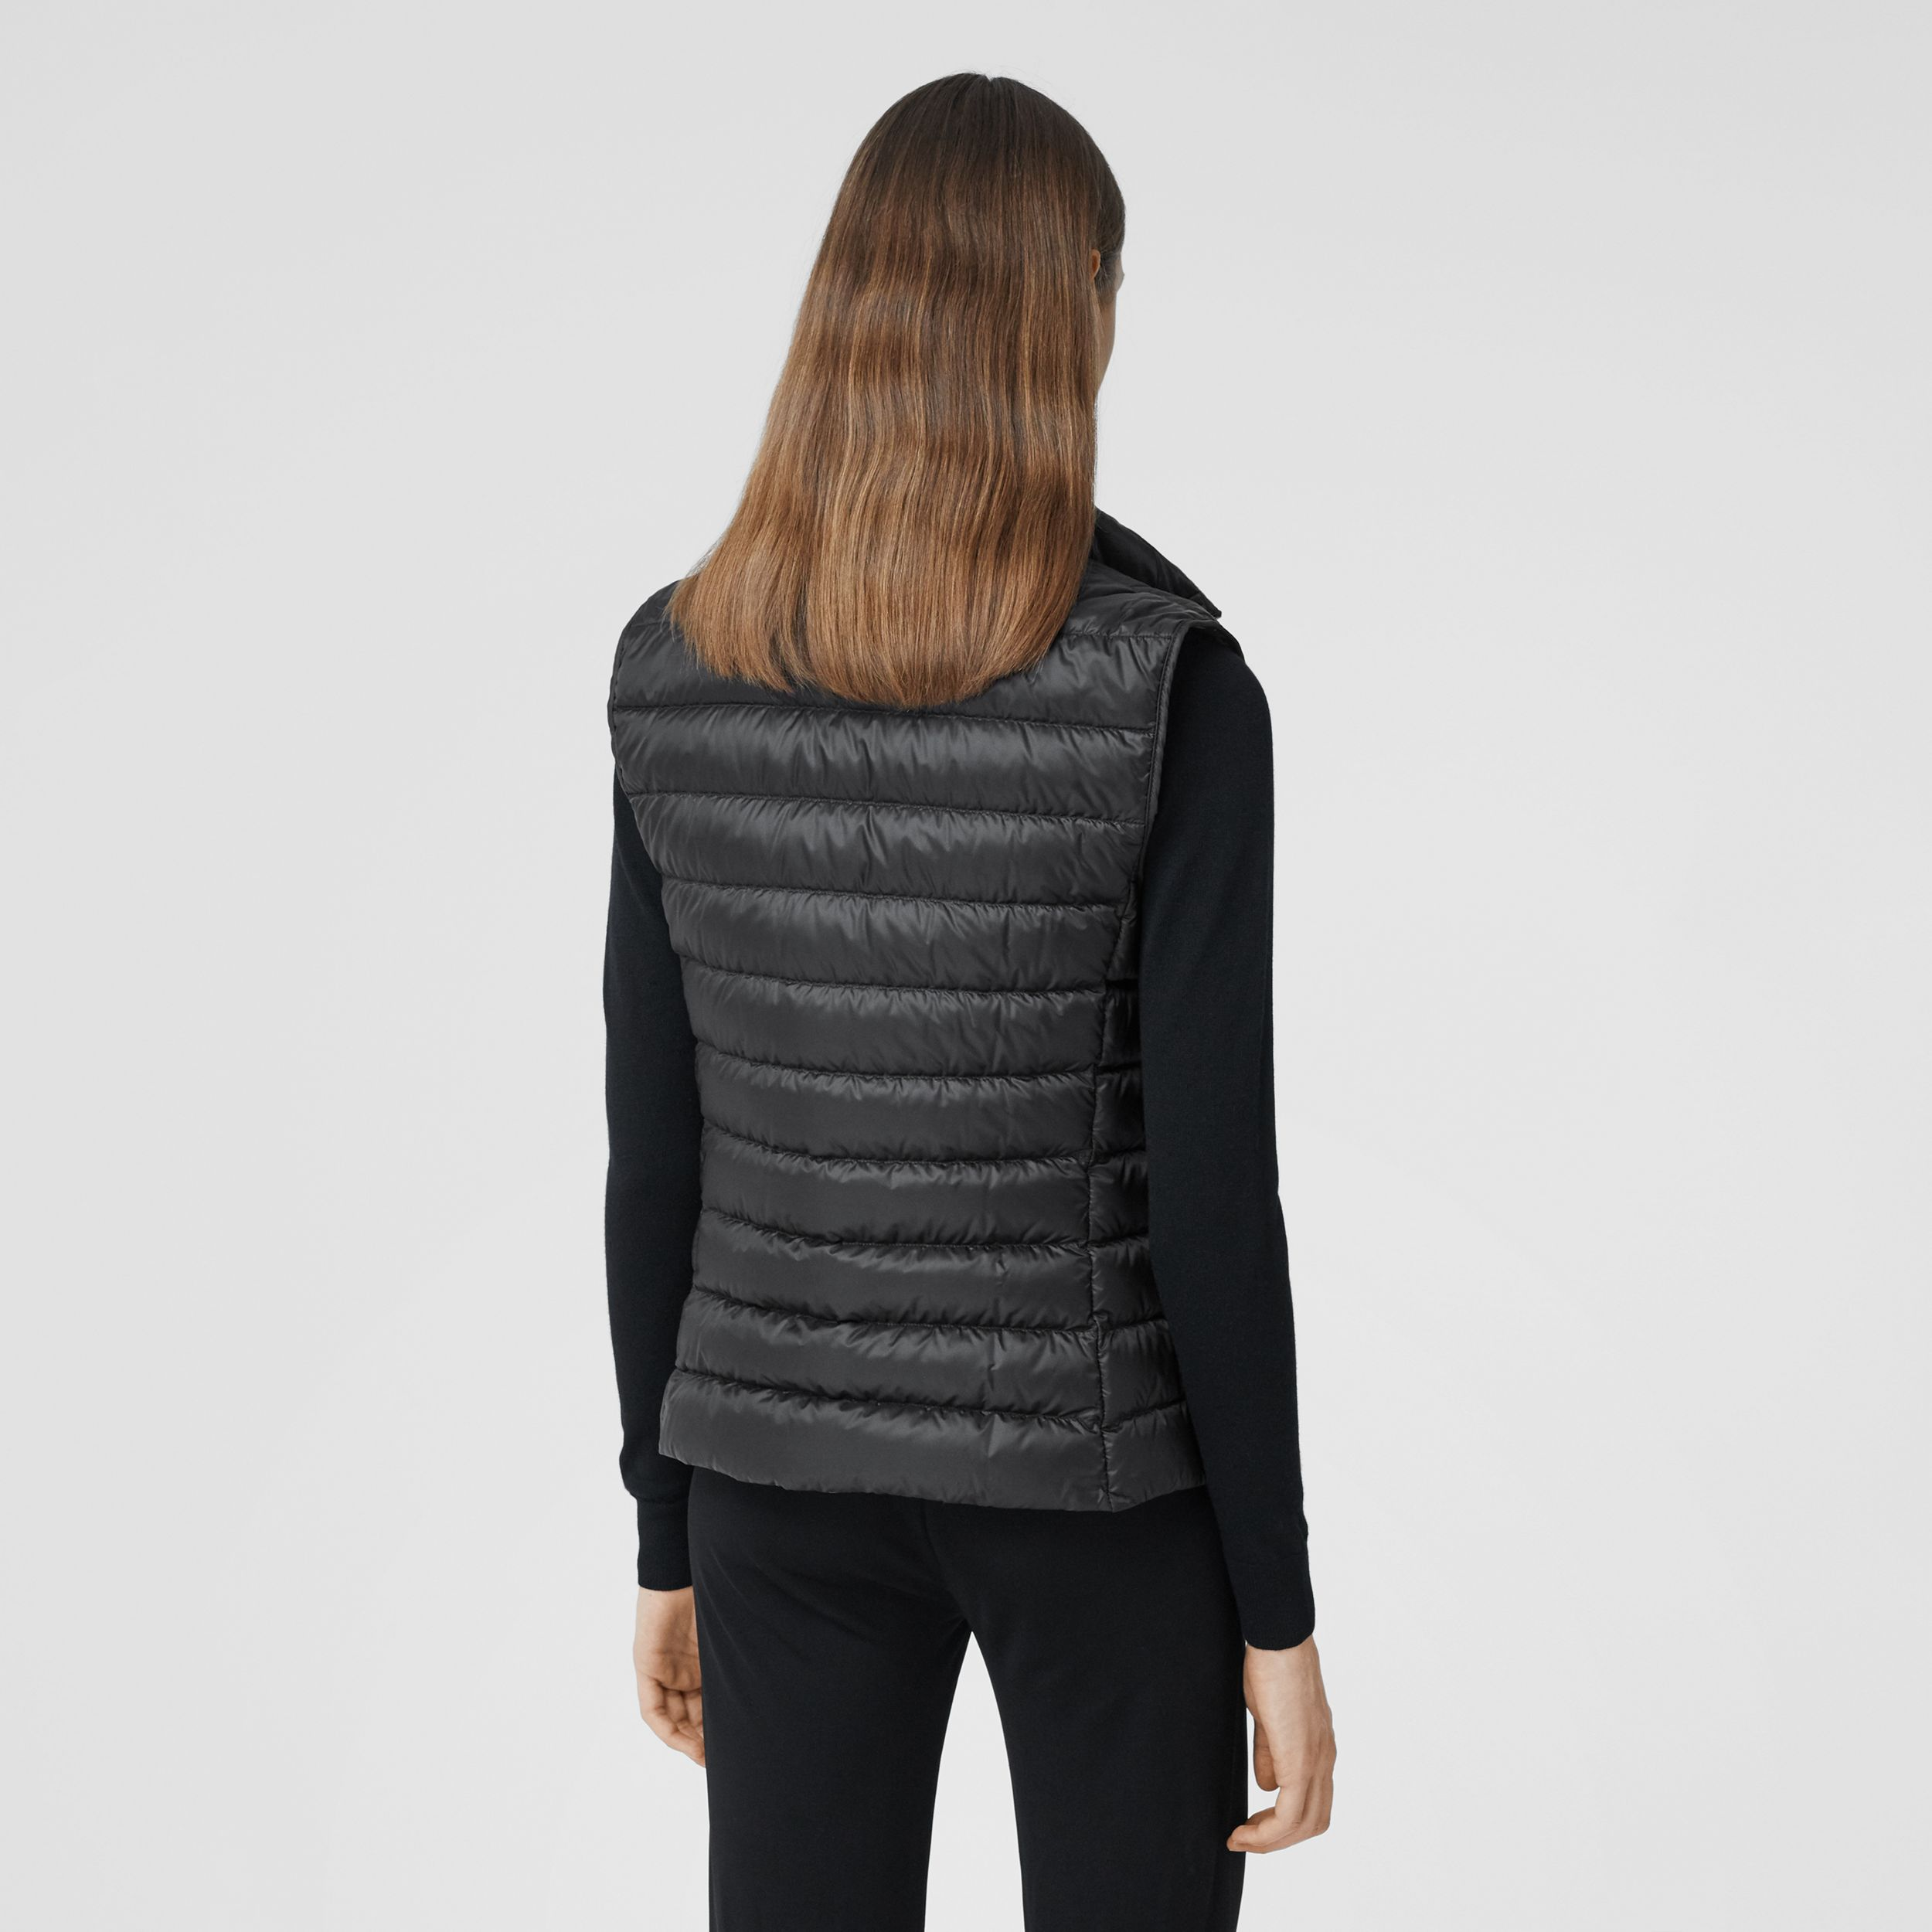 Monogram Print-lined Lightweight Puffer Gilet in Black - Women | Burberry - 3